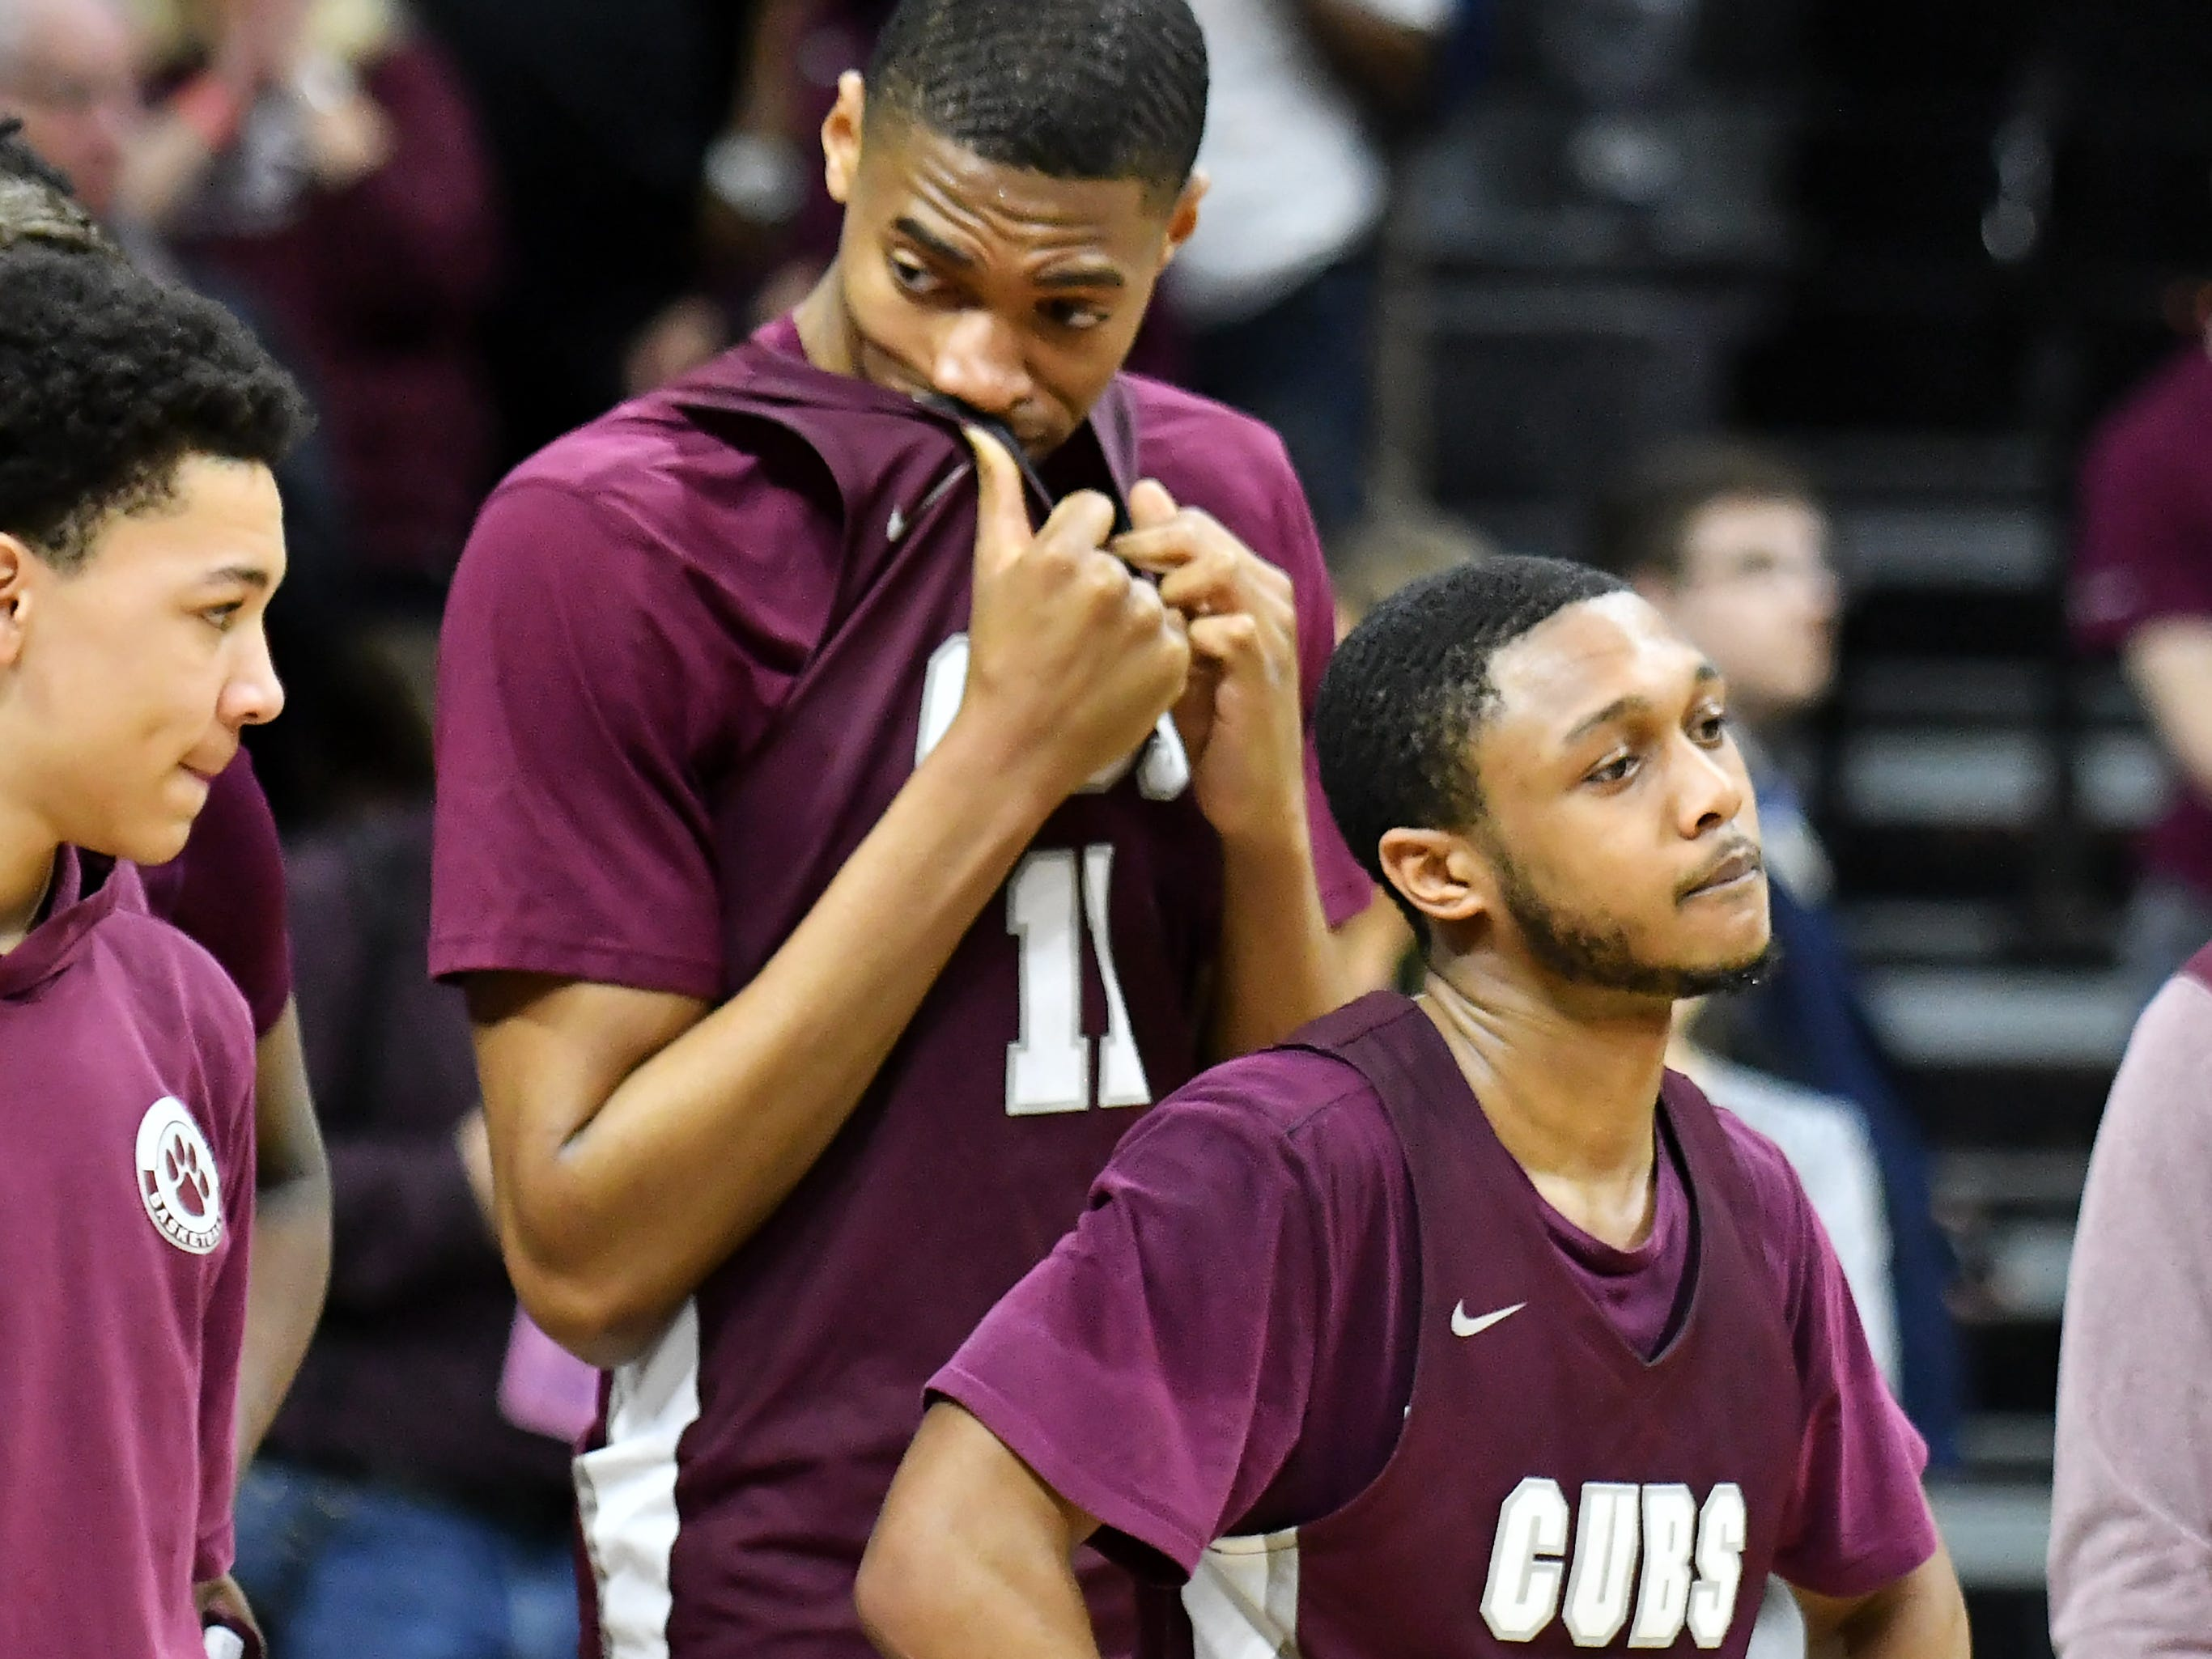 U-D Jesuit's Jalen Thomas (11) and Jordan Montgomery about to receive the runner-up trophy after the game.